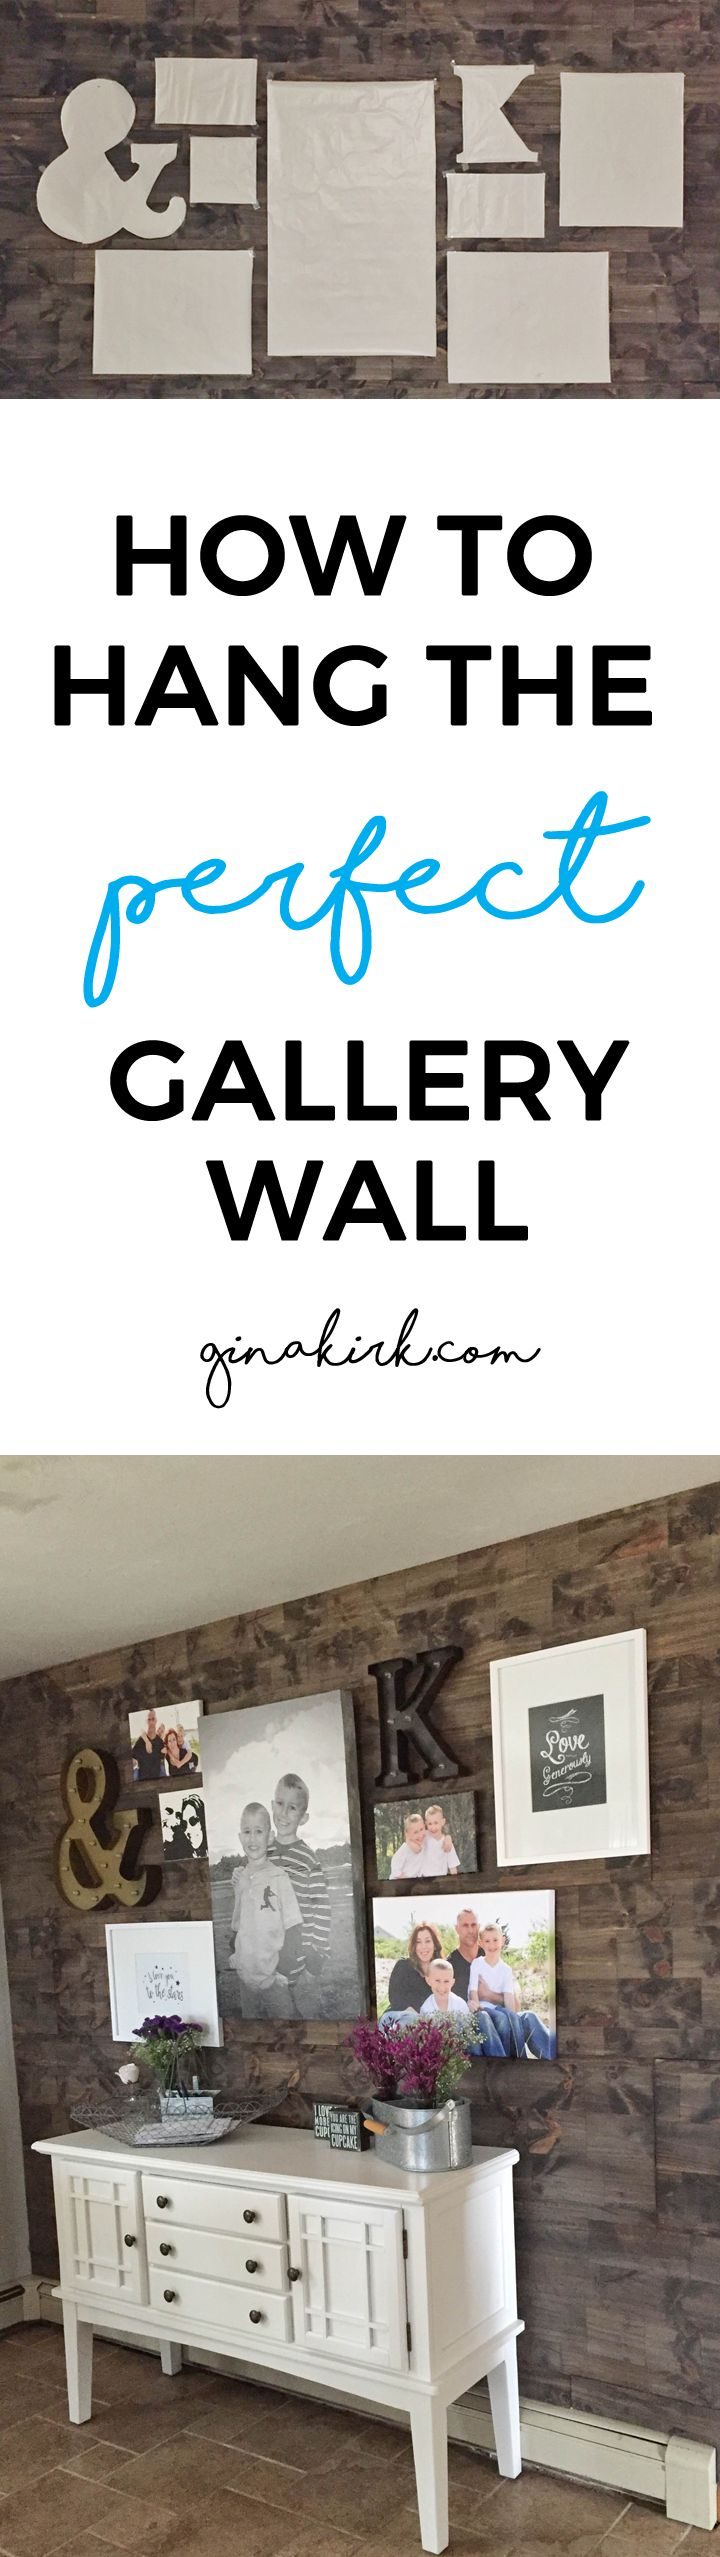 Best 25+ Photo gallery walls ideas on Pinterest | Photo wall layout, My  photo gallery and Picture walls